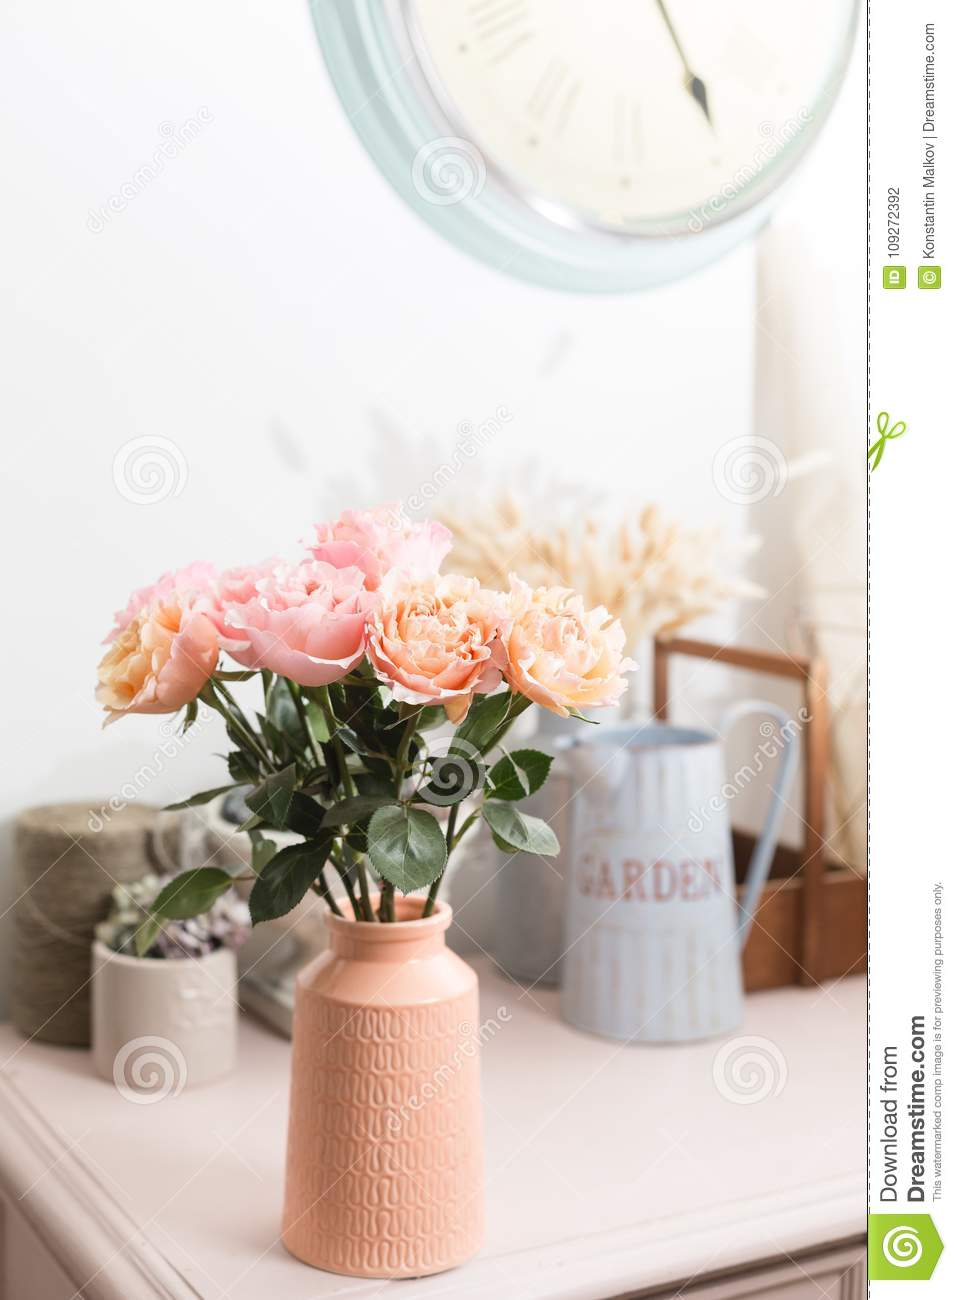 Shabby Chic Shop Bouquet Flowers Of Pink Roses In Glass Vase Shabby Chic